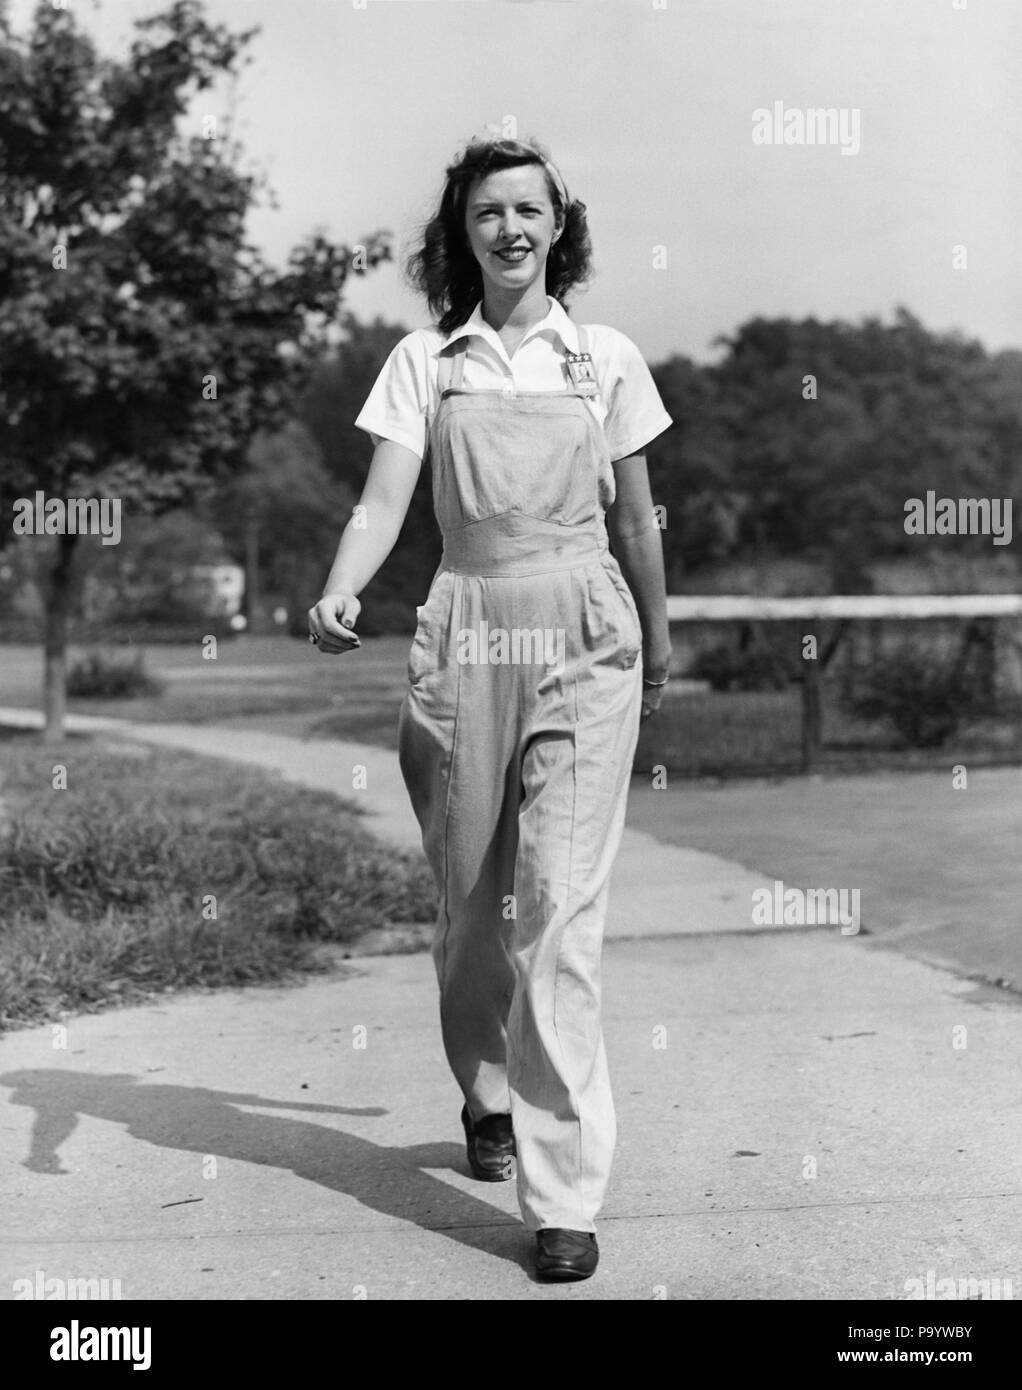 1940s HAPPY SMILING WOMAN FEMALE WORKER OUTDOOR WALKING TOWARD  WEARING BIB OVERALLS COVERALLS WORK CLOTHES LOOKING AT CAMERA - q43287 CPC001 HARS GROWING YOUNG ADULT PLEASED JOY LIFESTYLE FEMALES WW2 RURAL GROWNUP HOME LIFE COMMUNICATING FULL-LENGTH LADIES PHYSICAL FITNESS PERSONS OVERALLS GROWN-UP FARMING CONFIDENCE AGRICULTURE B&W EYE CONTACT OCCUPATION CHEERFUL STRENGTH TOWARD WORLD WARS INDEPENDENT WORLD WAR WORLD WAR TWO WORLD WAR II SMILES GROW JOYFUL ROSIE THE RIVETER STYLISH WORLD WAR 2 BIB COMMUNICATE YOUNG ADULT WOMAN BLACK AND WHITE CAUCASIAN ETHNICITY COVERALLS OLD FASHIONED - Stock Image